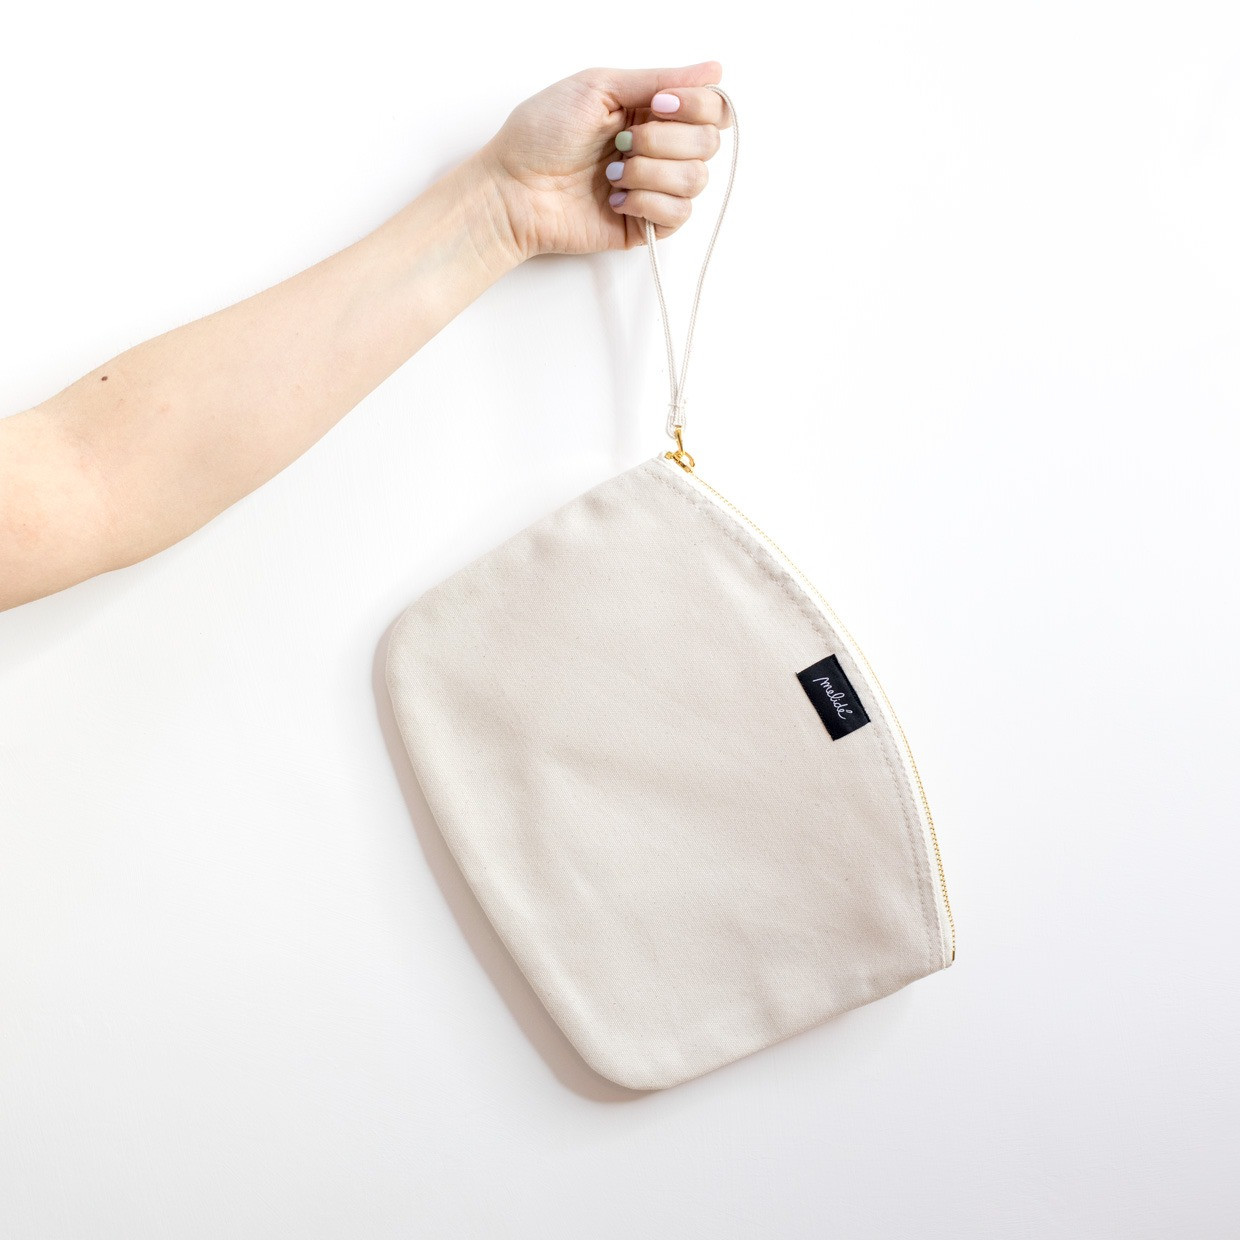 The ZIPPED POUCH L - Monogram